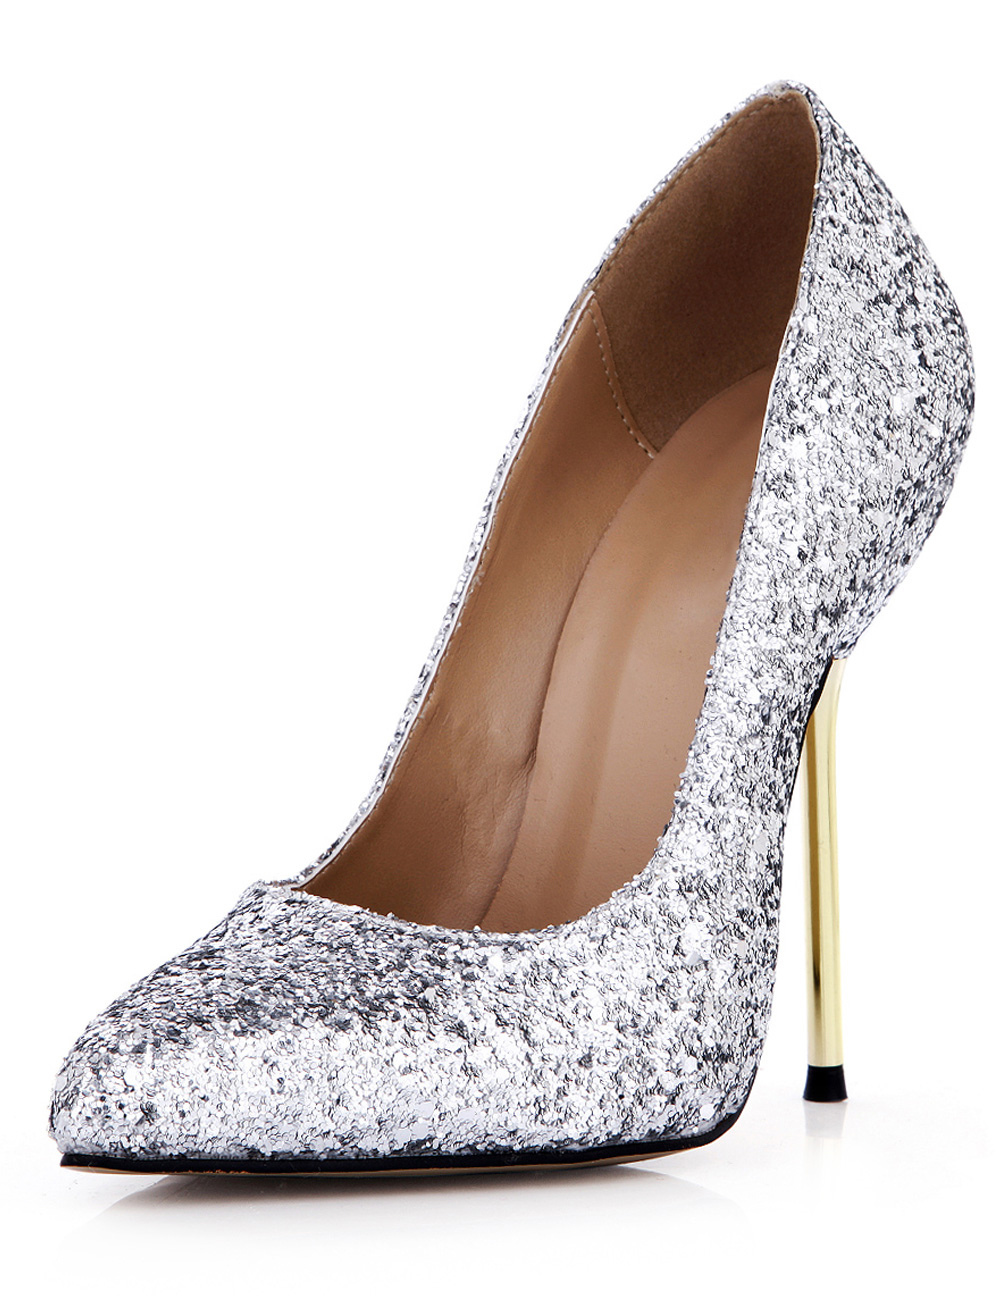 d0ae848ccc8 ... Pretty Silver Stiletto Heel Sequined Cloth Womens Pointy Toe Heels  -No.6. 12. 20%OFF. Color Silver